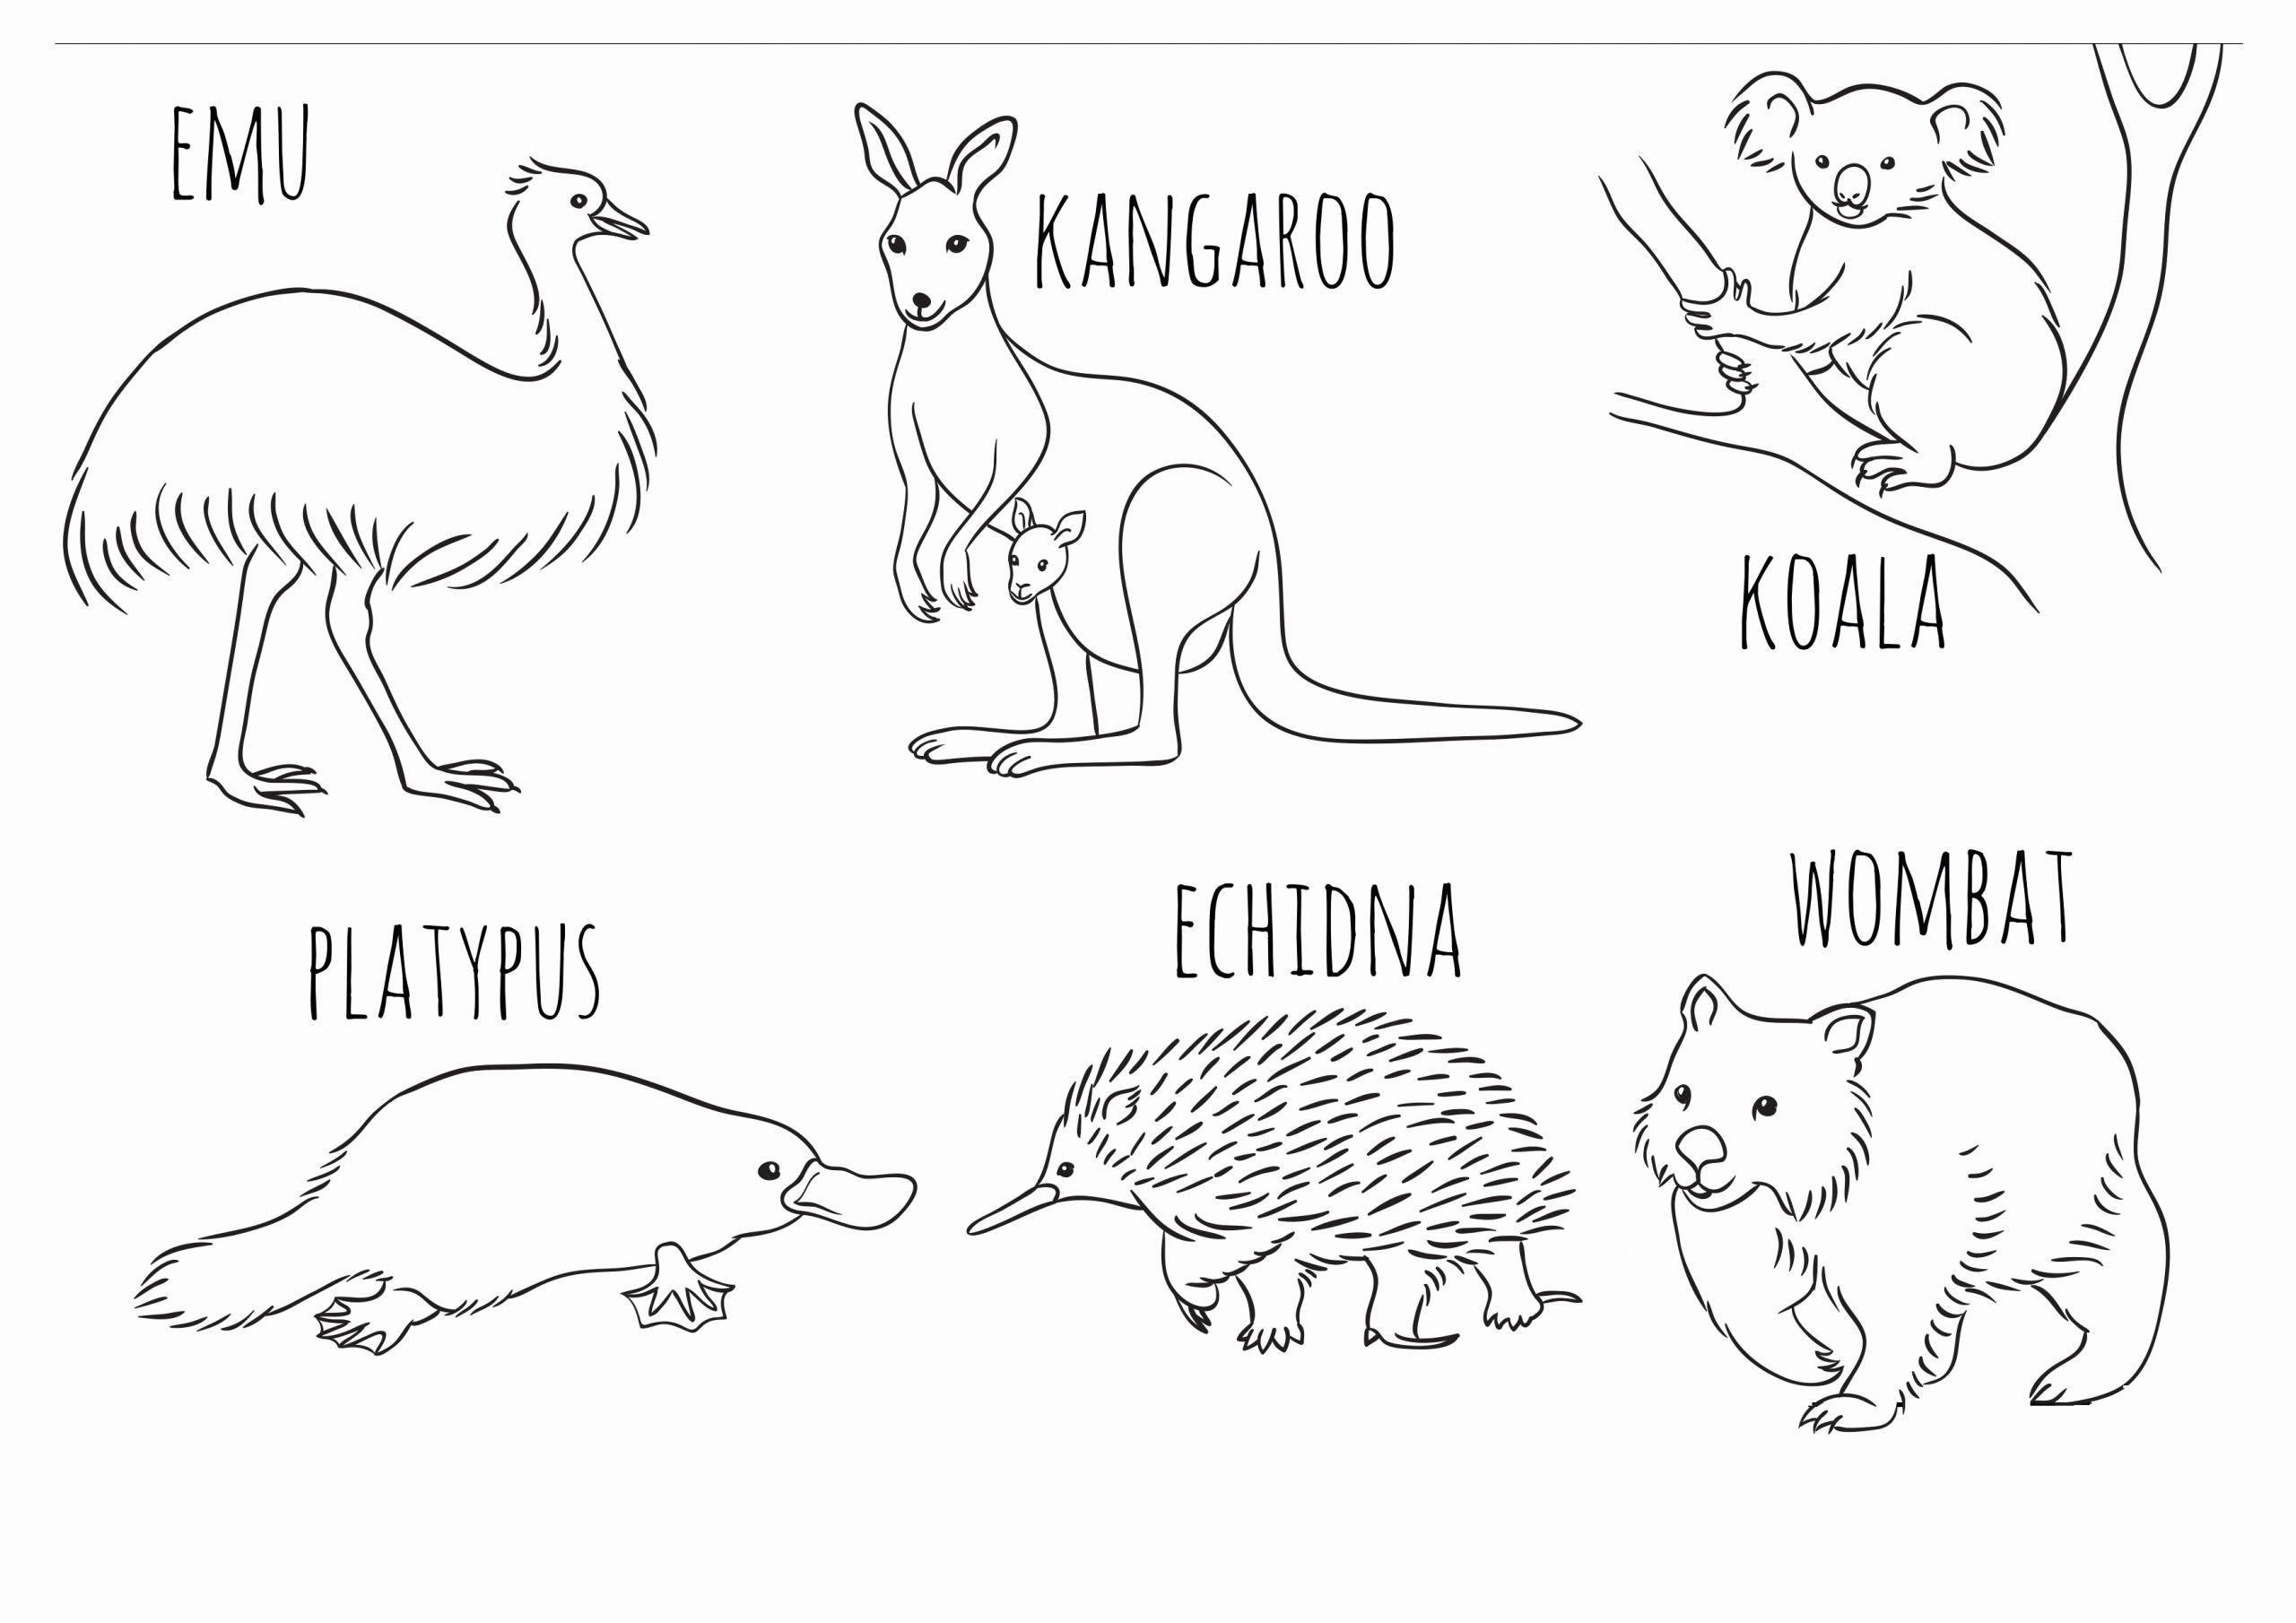 Coloring Animals For Kids Fresh Colouring In Activities For Kids Australia Day 2020 Australia Animals Animal Coloring Pages Australian Animals [ 1810 x 2560 Pixel ]